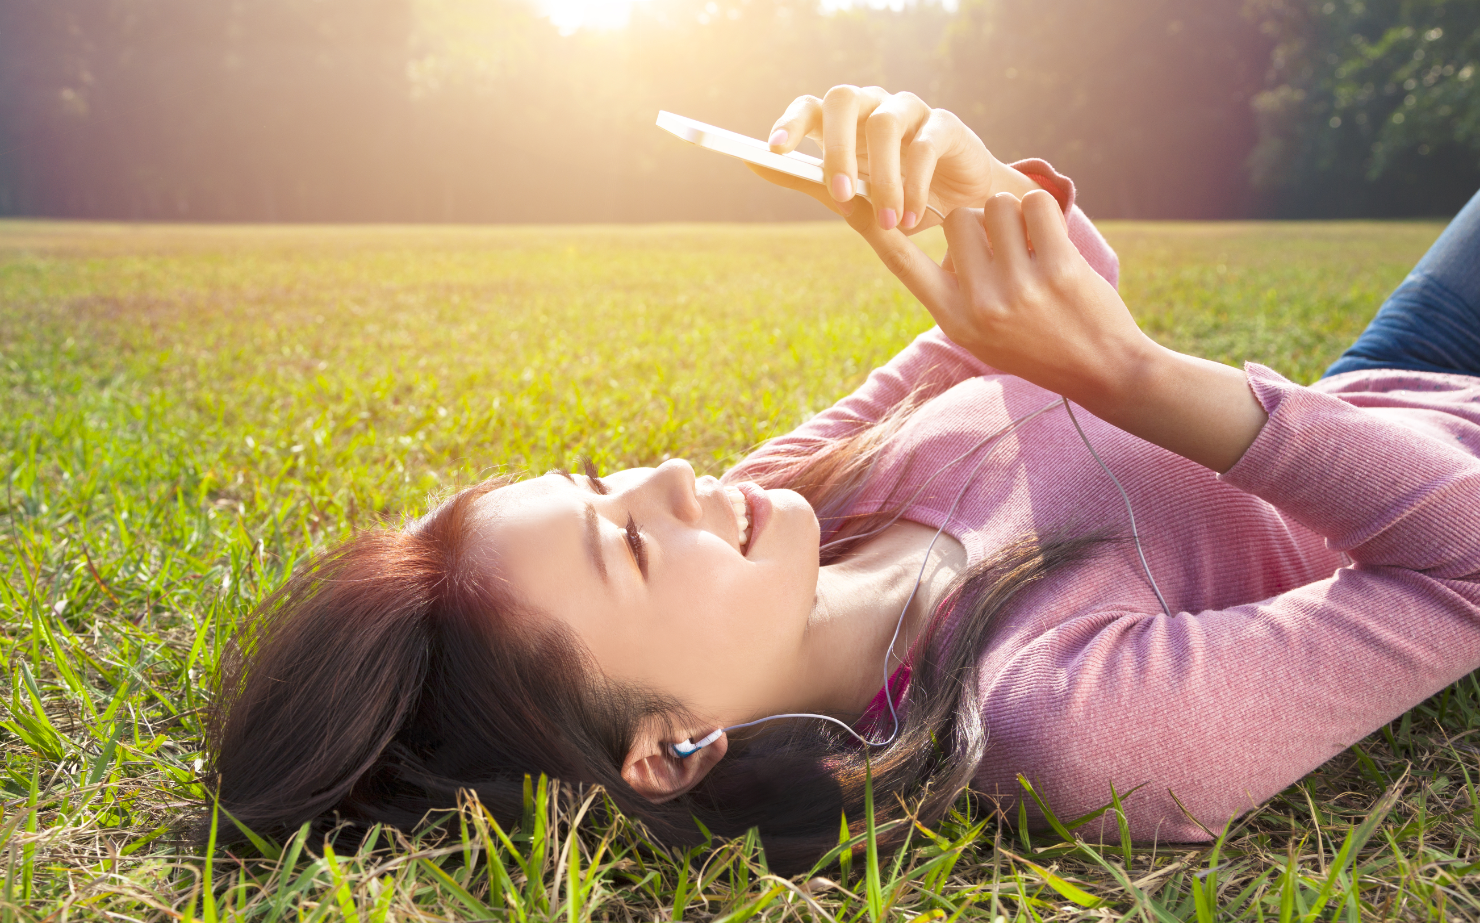 A woman in a sunny field lying on her back, looking at her phone after exercising.